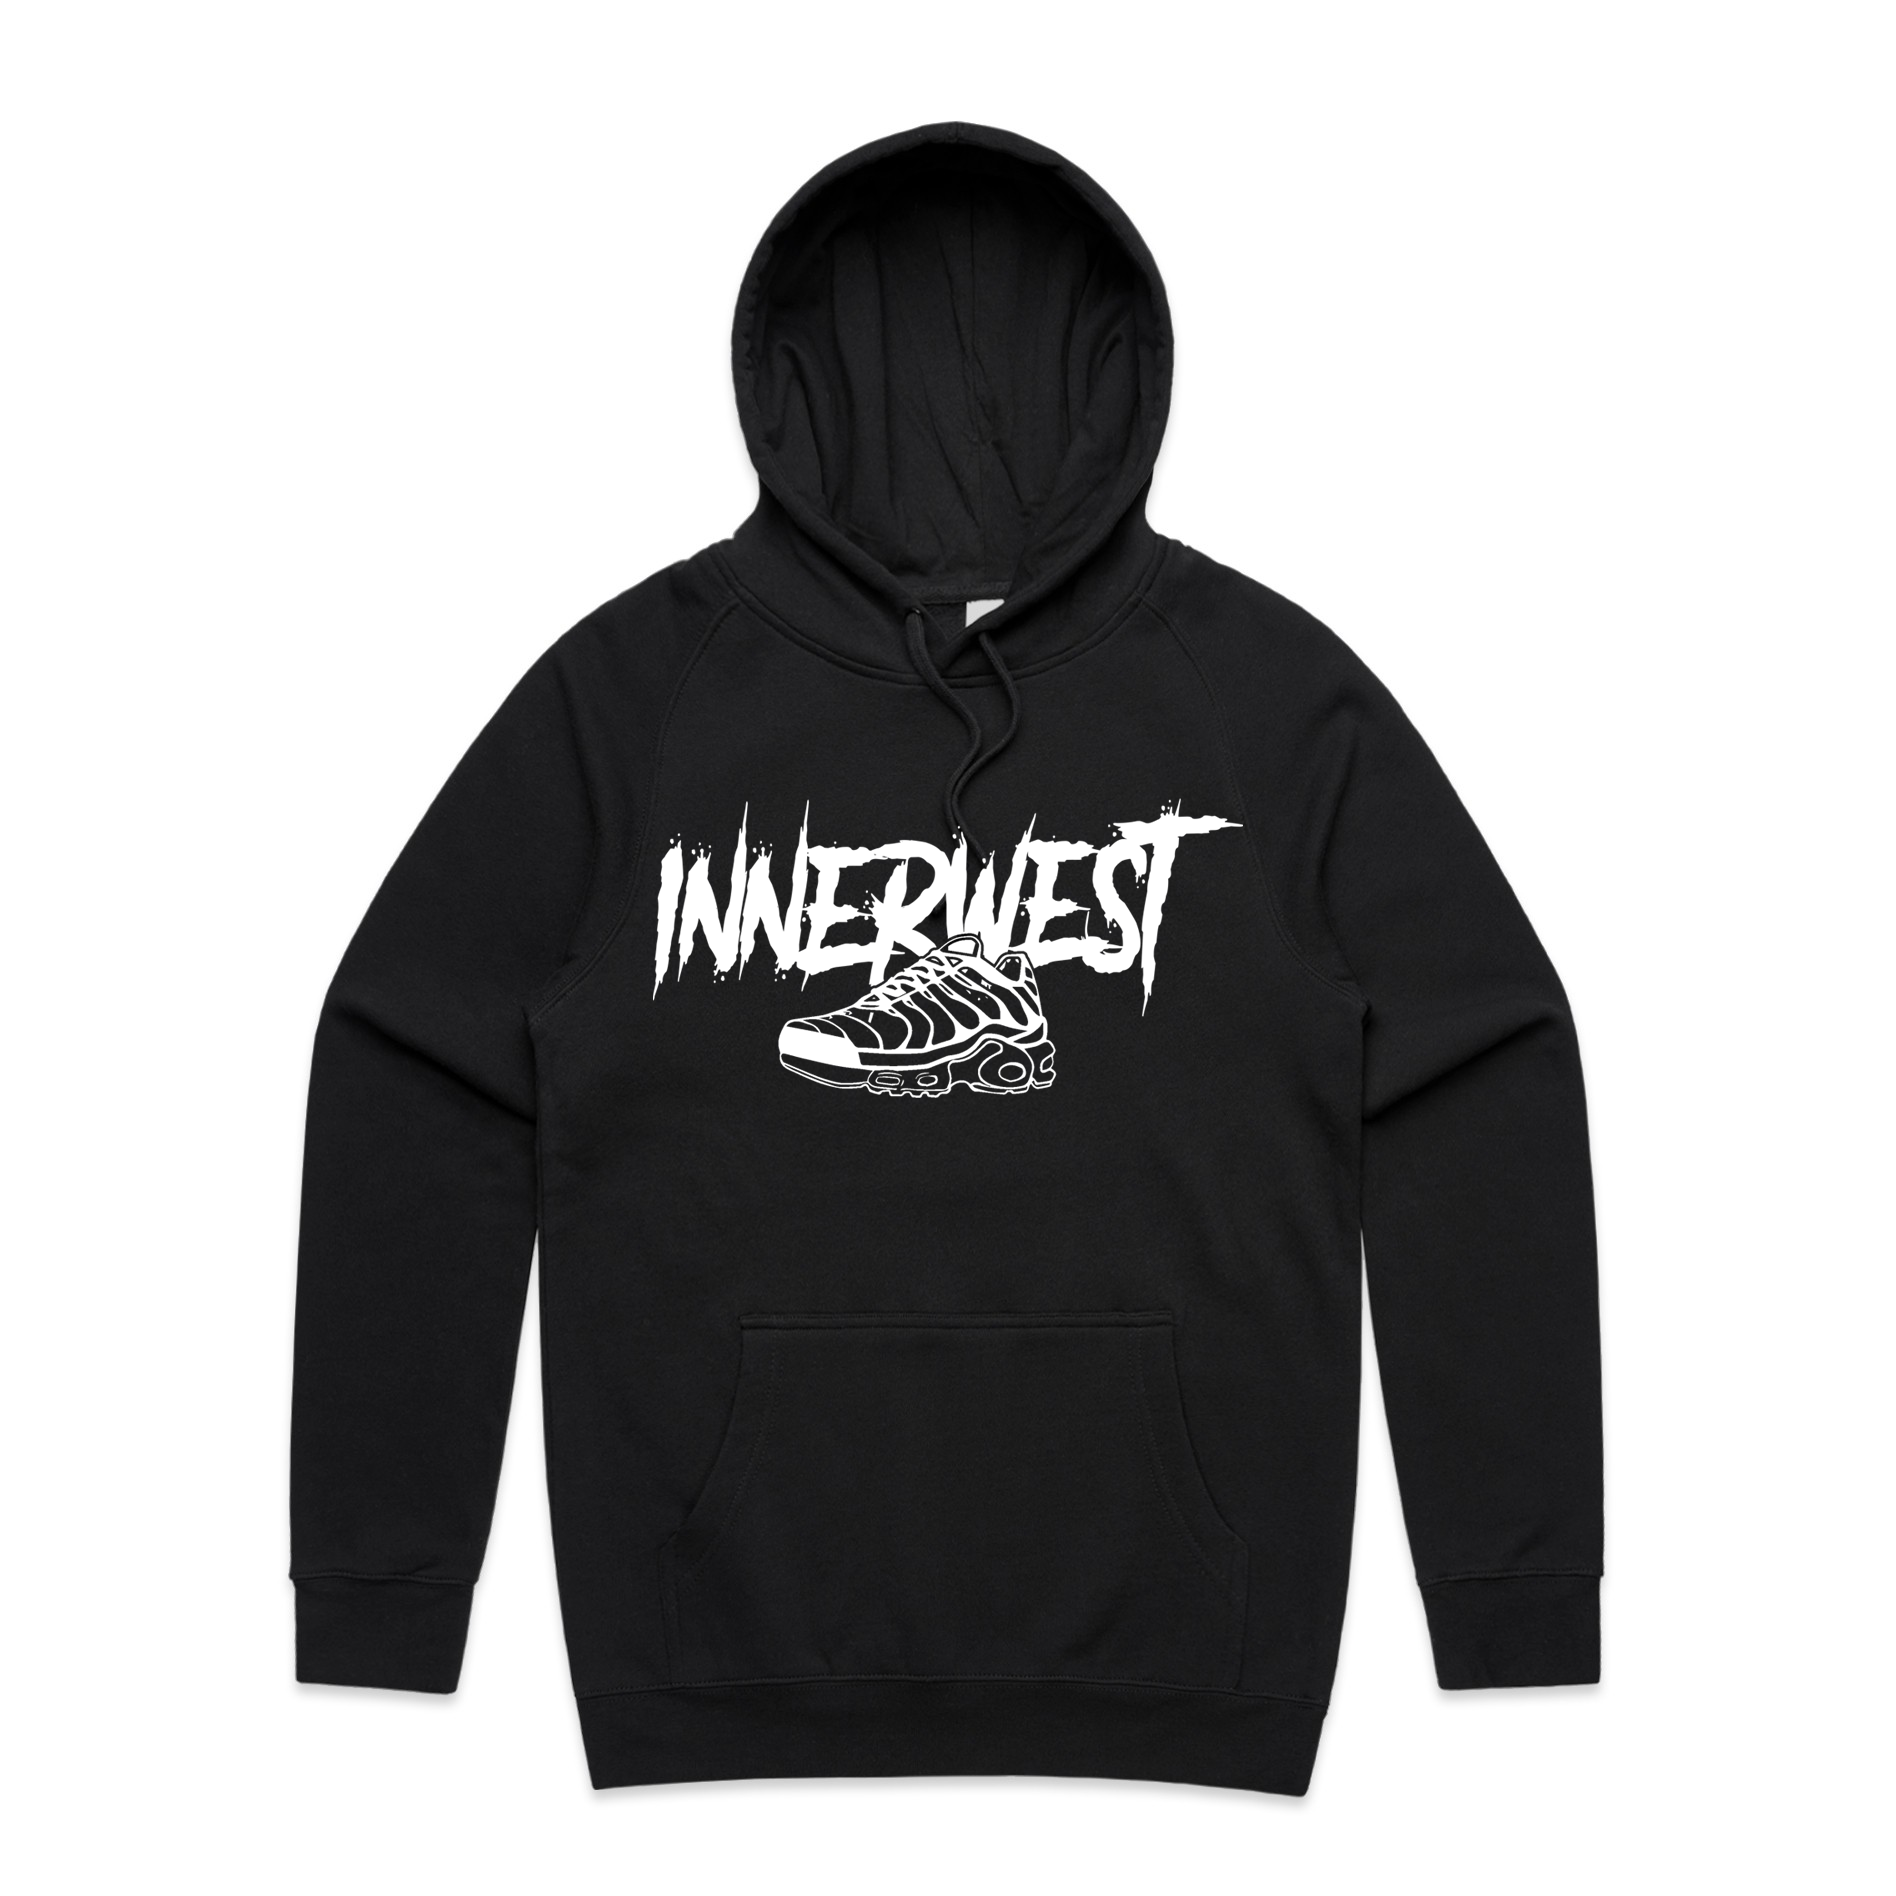 INNERWEST CLOTHING HOODY – KHROME URBAN WEAR